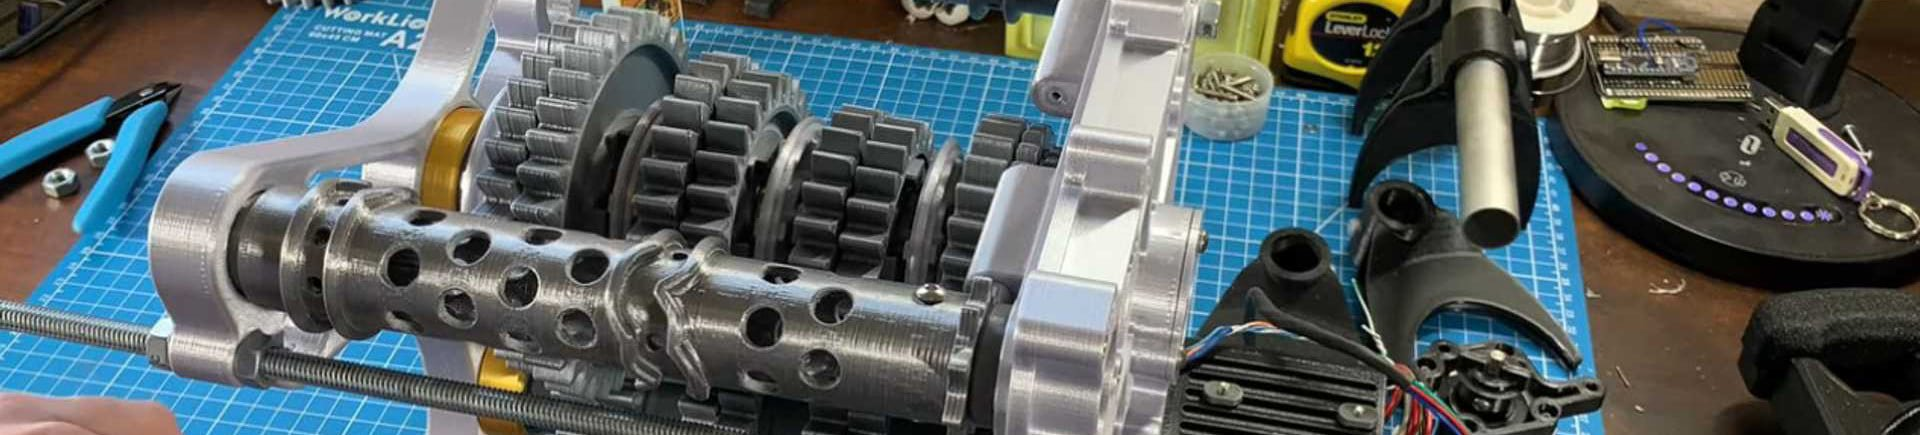 3D Printed Working Model of an F1 Gearbox